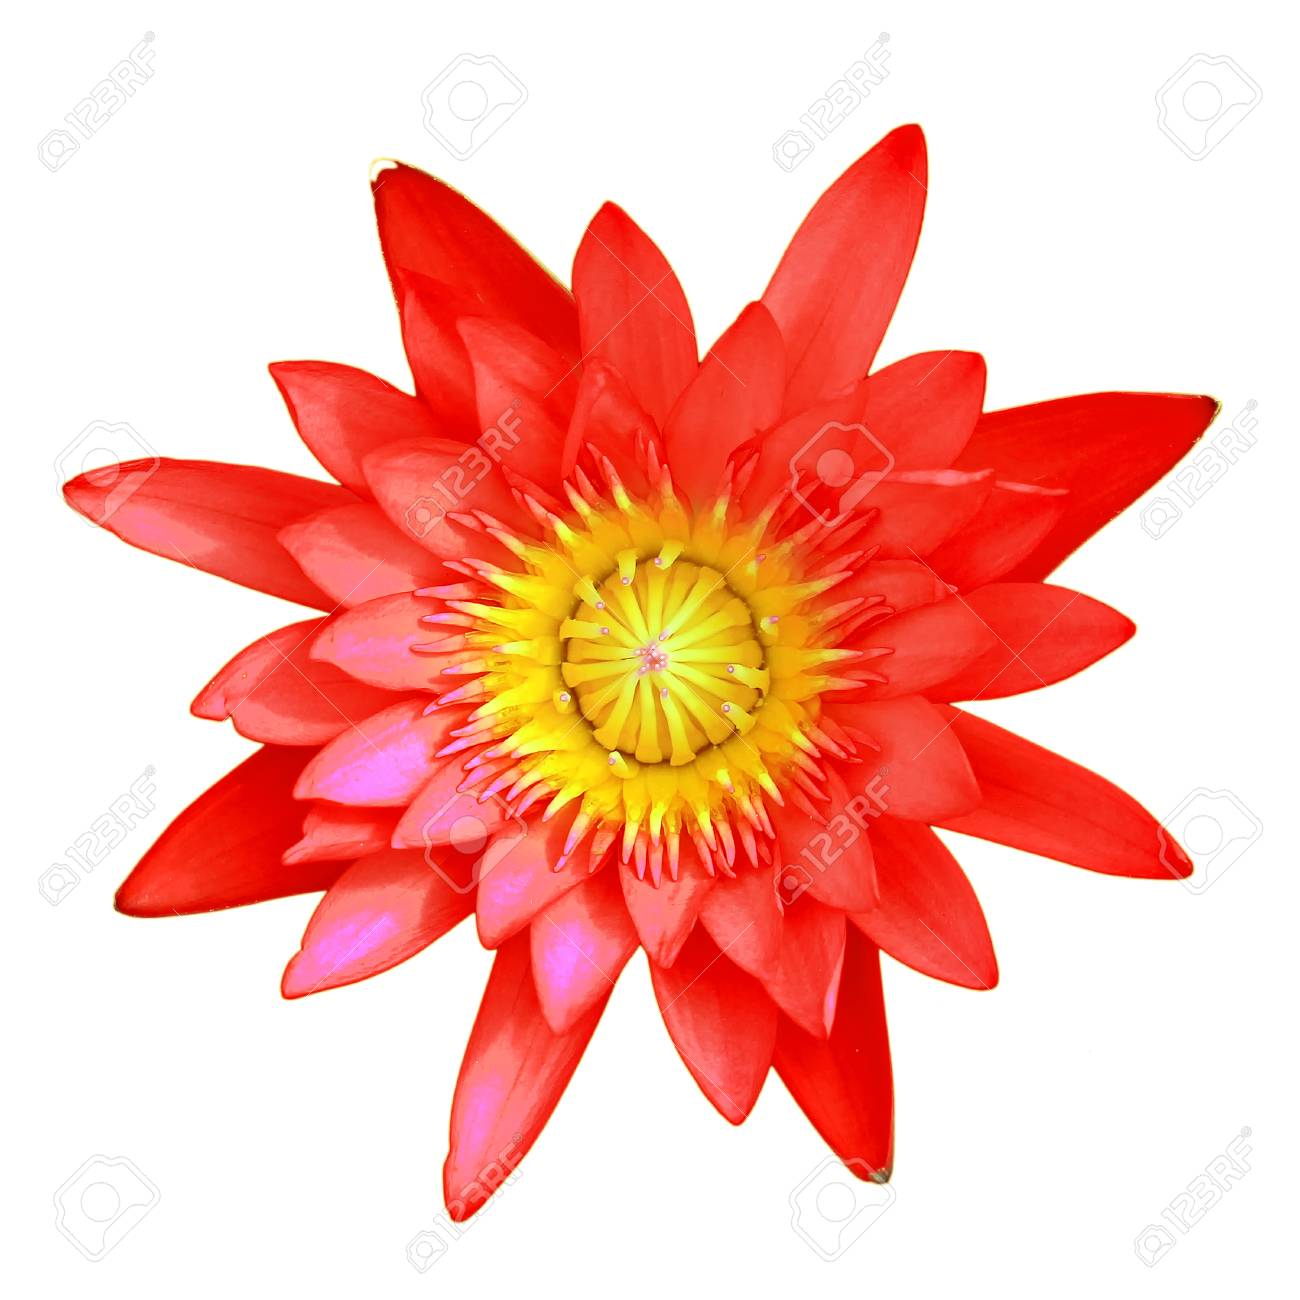 Red Lotus Flower Isolated On White Background Stock Photo Picture